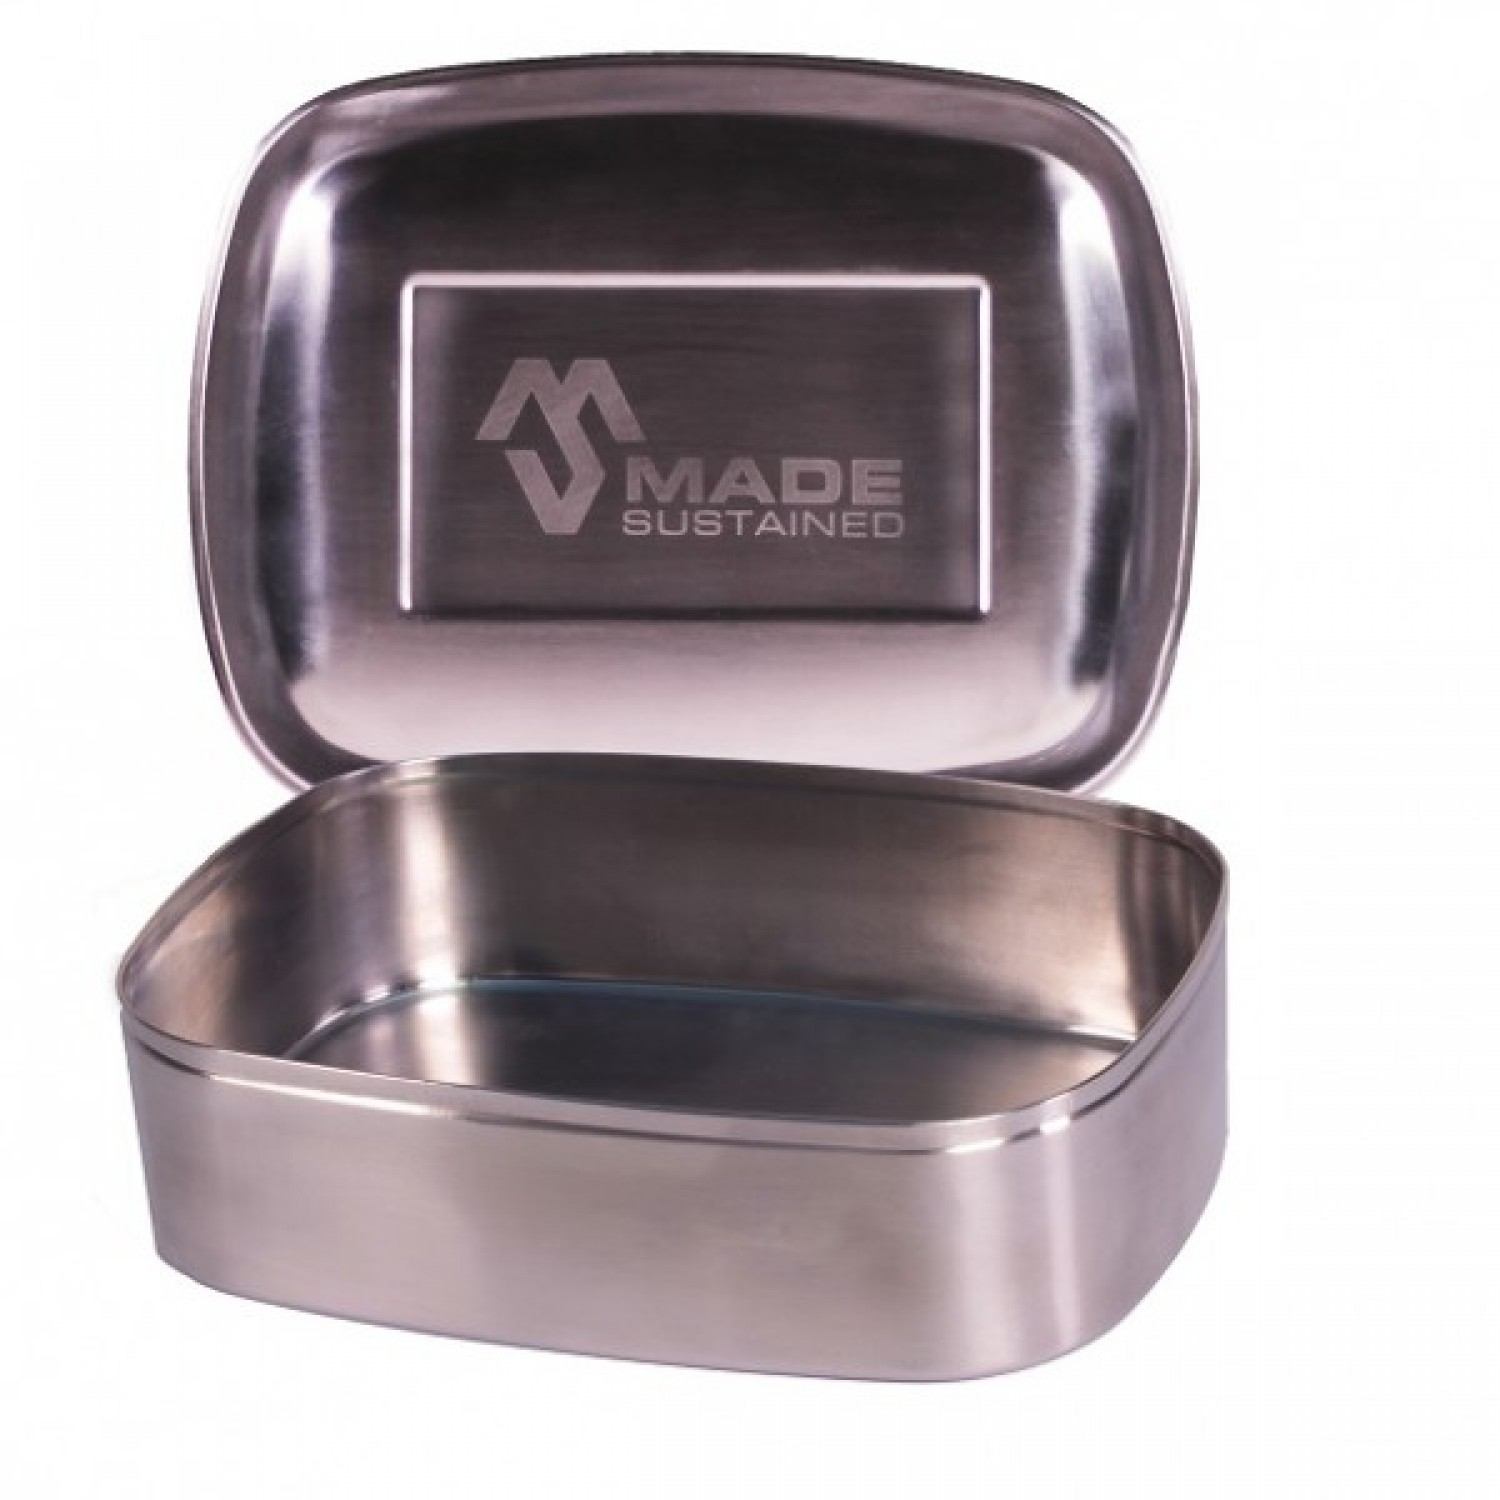 Rectangular Stainless Steel Lunchbox by Made Sustained